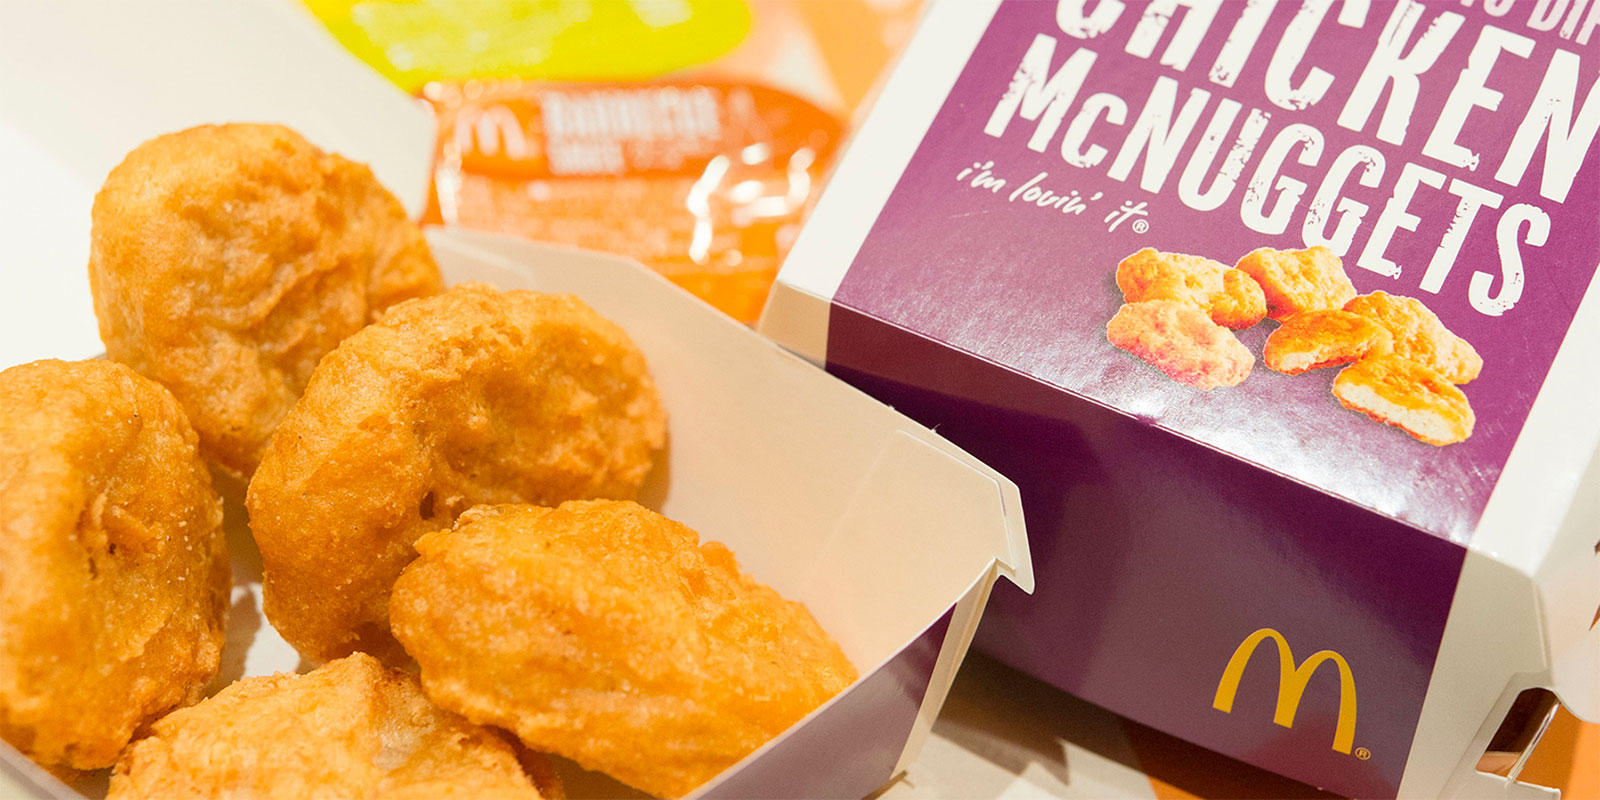 11 Fast Food Items That are